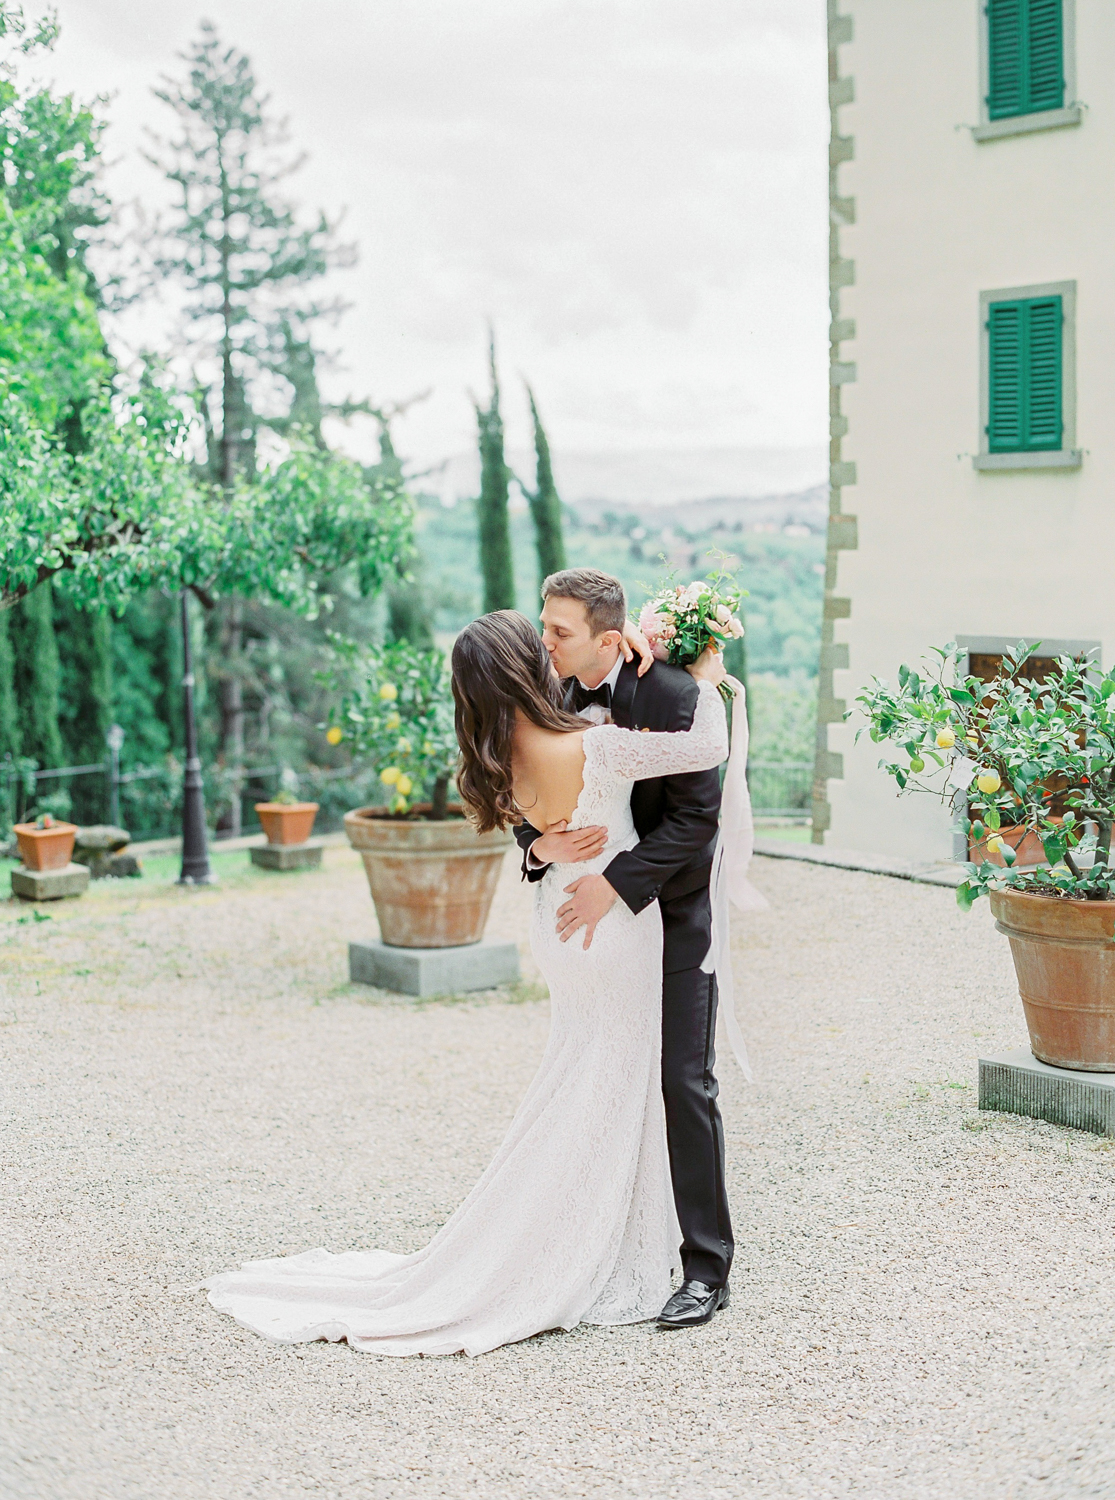 masha golub photography 10 1 - LOVE IN TUSCANY